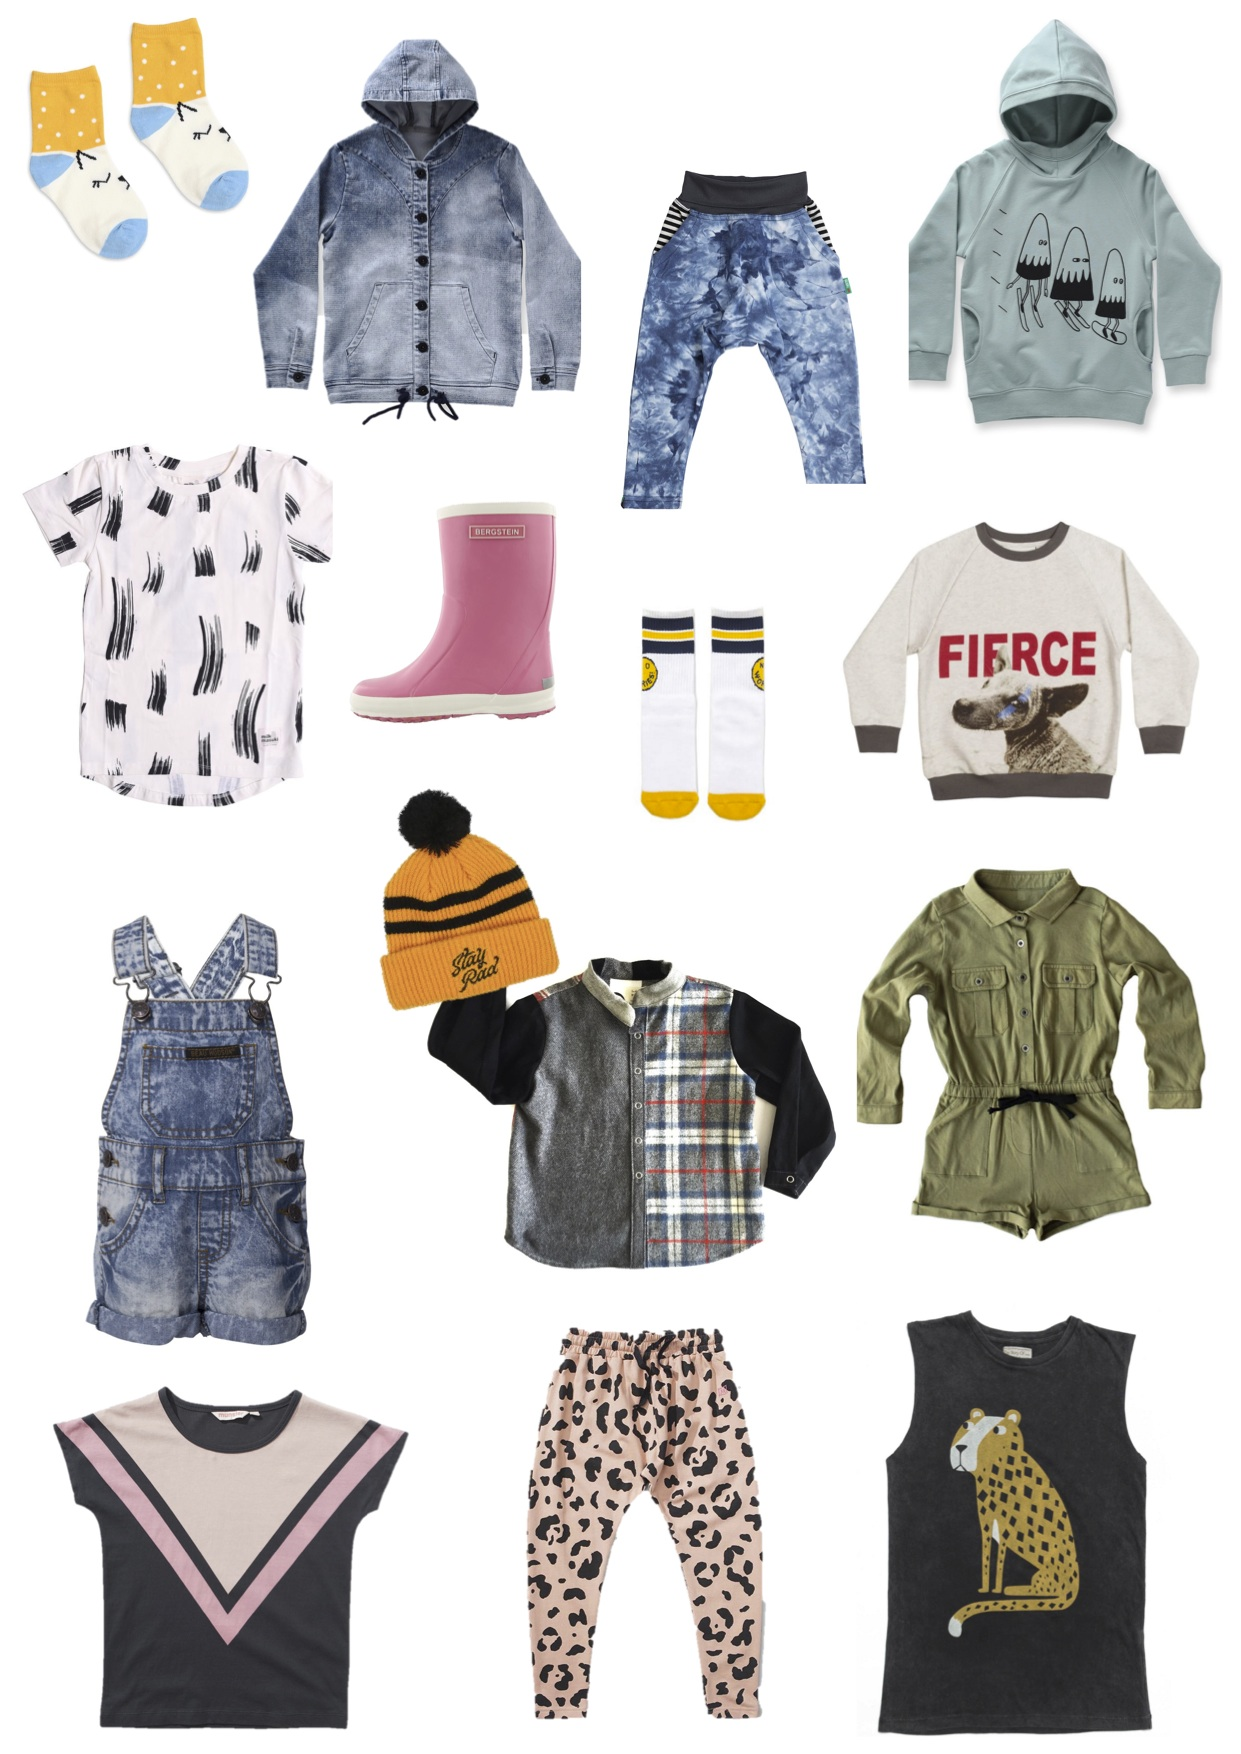 Kids Outfits Clothes Fashion: 15 Rad Kids Clothing Items From Aussie Brands